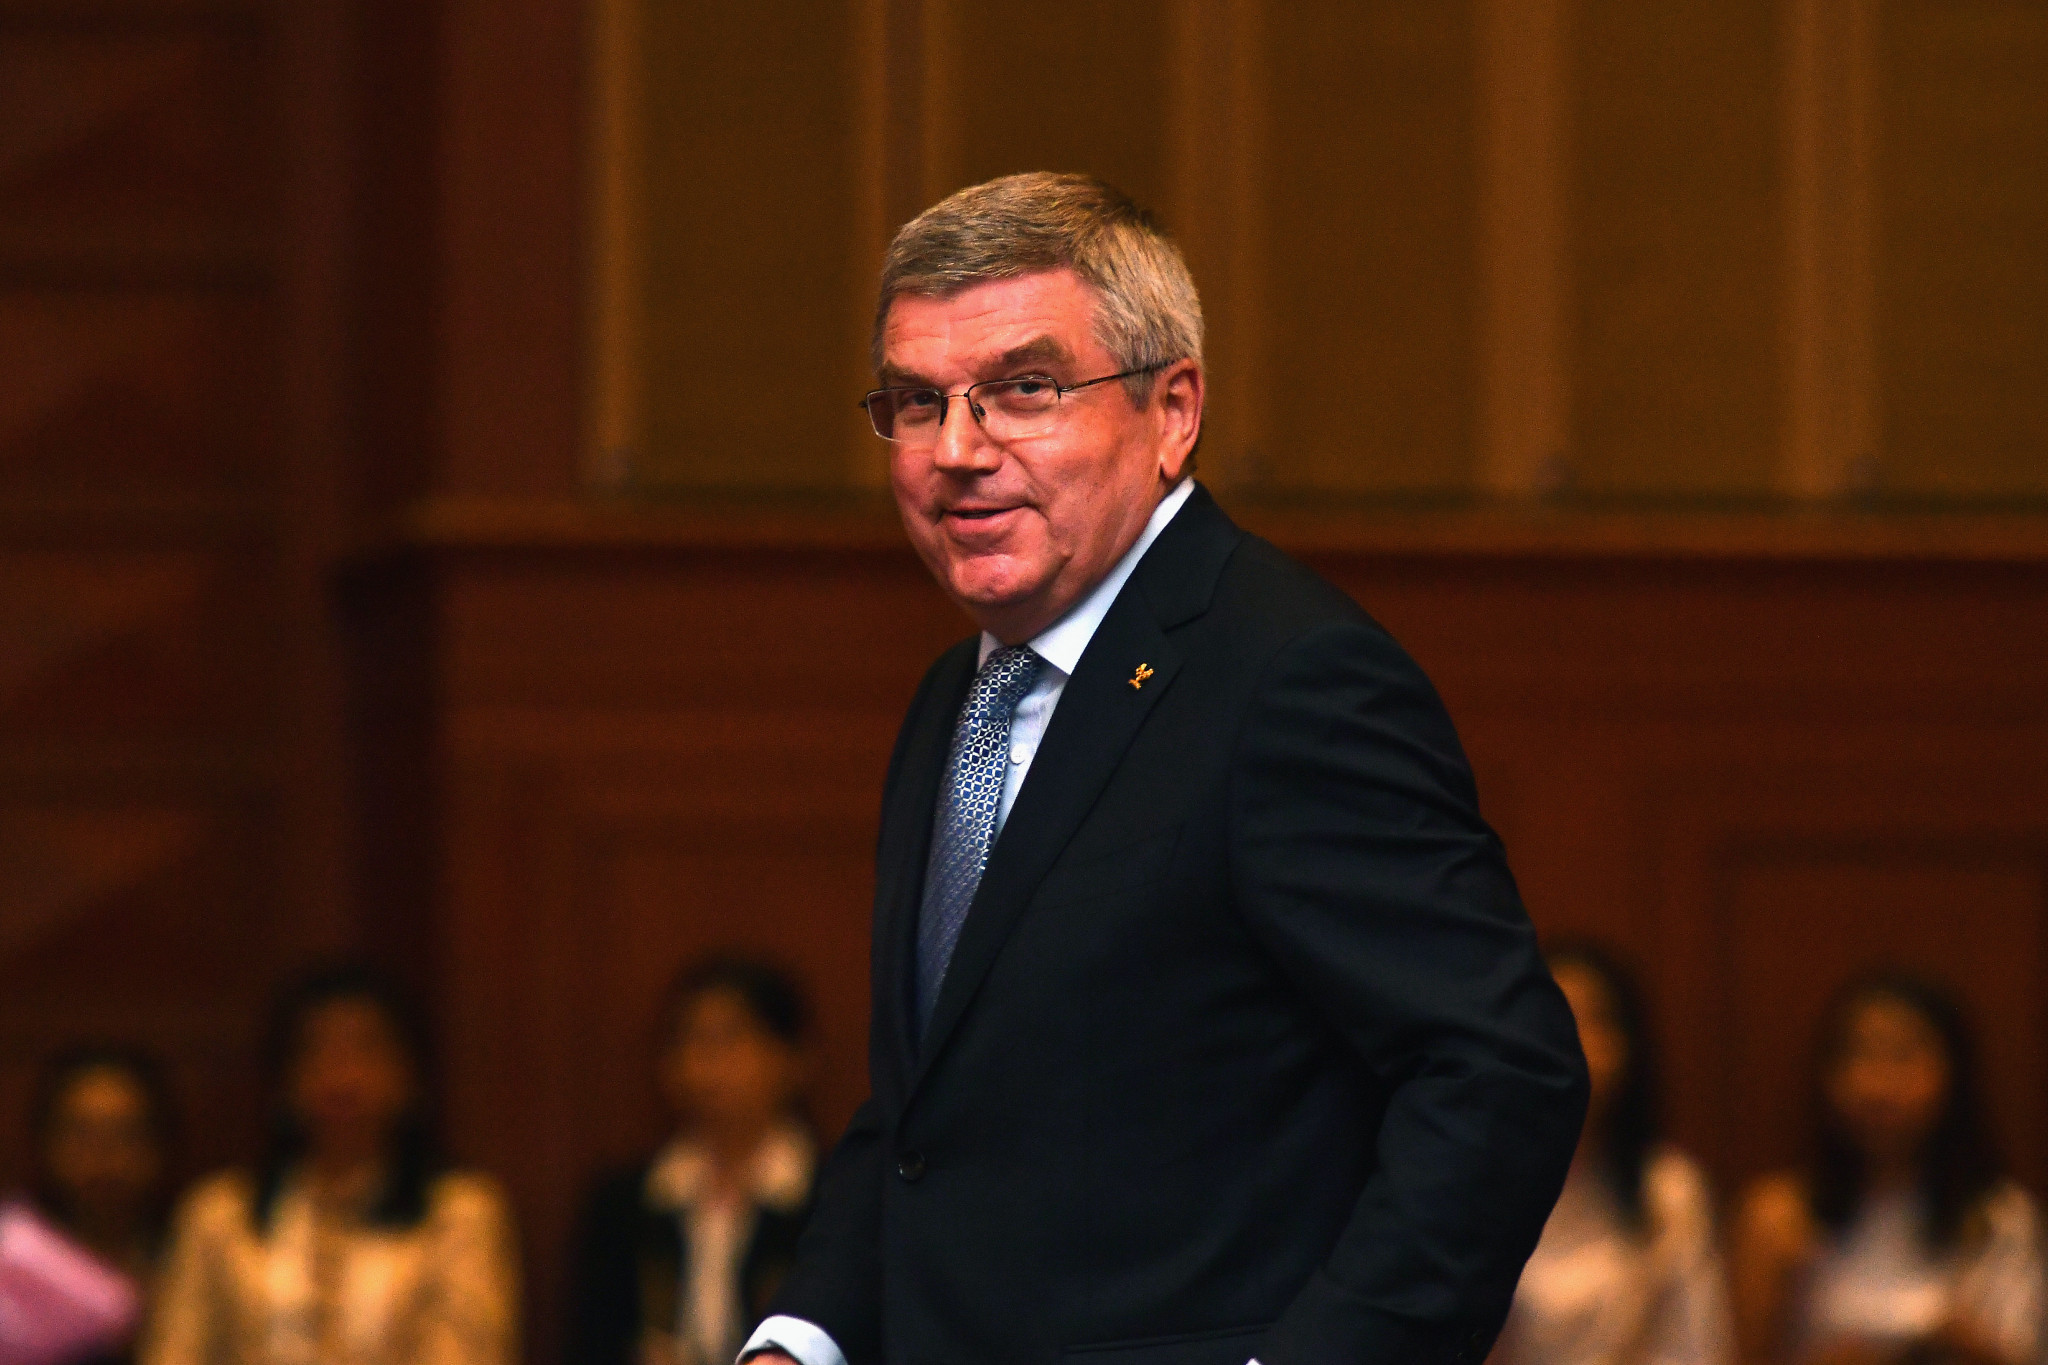 Thomas Bach spoke at a meeting attended by all 33 sports on the Tokyo 2020 Olympic programme ©Getty Images